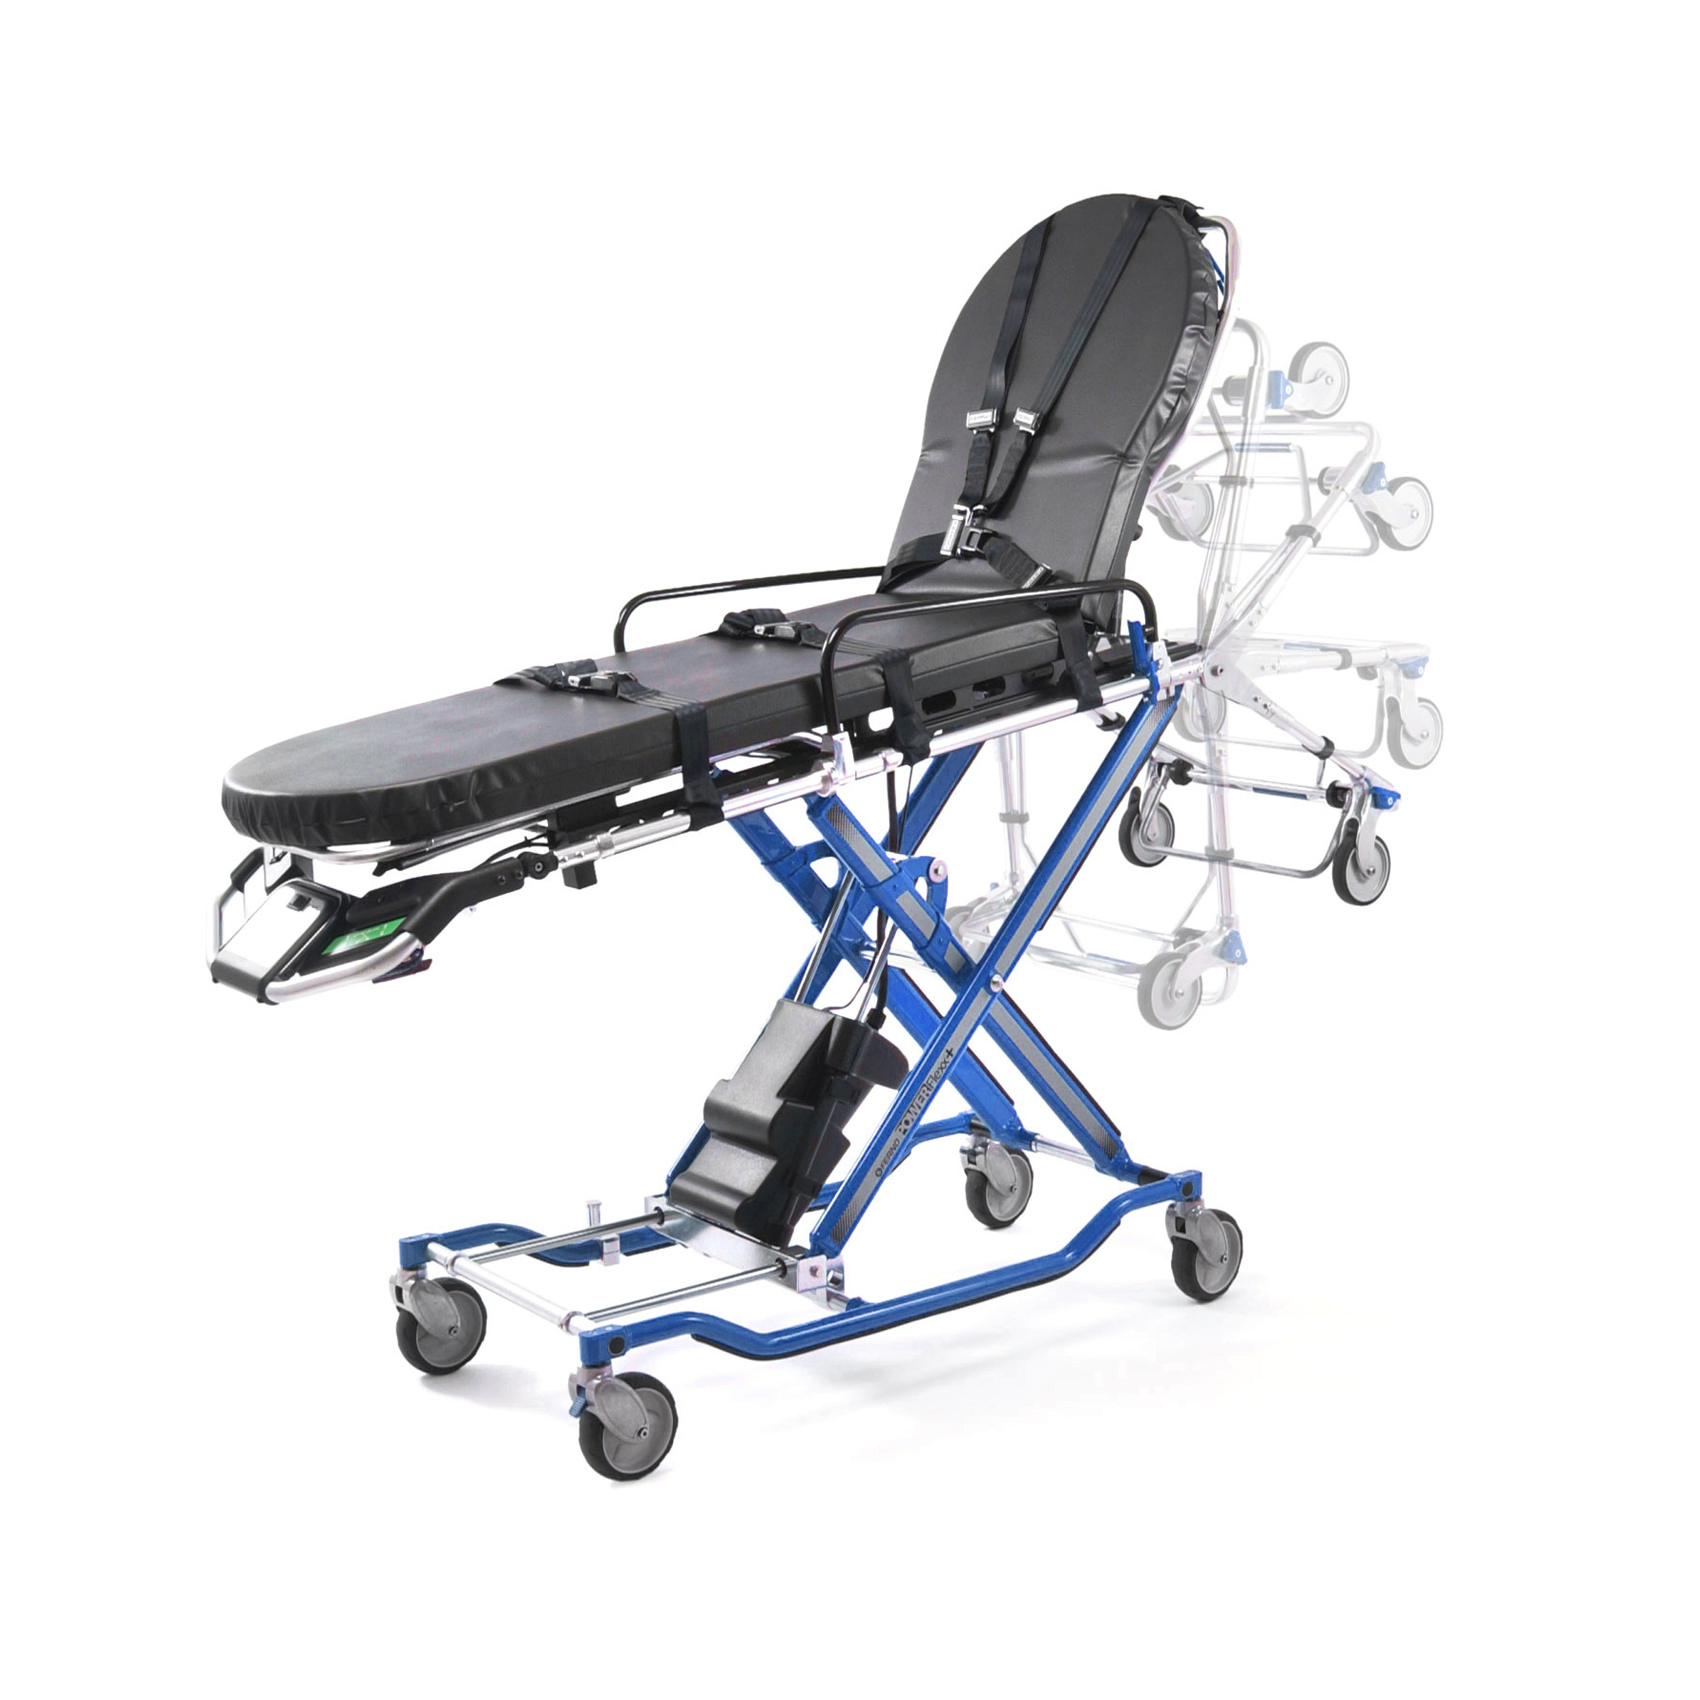 Stryker Stair Chair Ferno Power Flexx Refurbished Stretchers And Stair Chairs